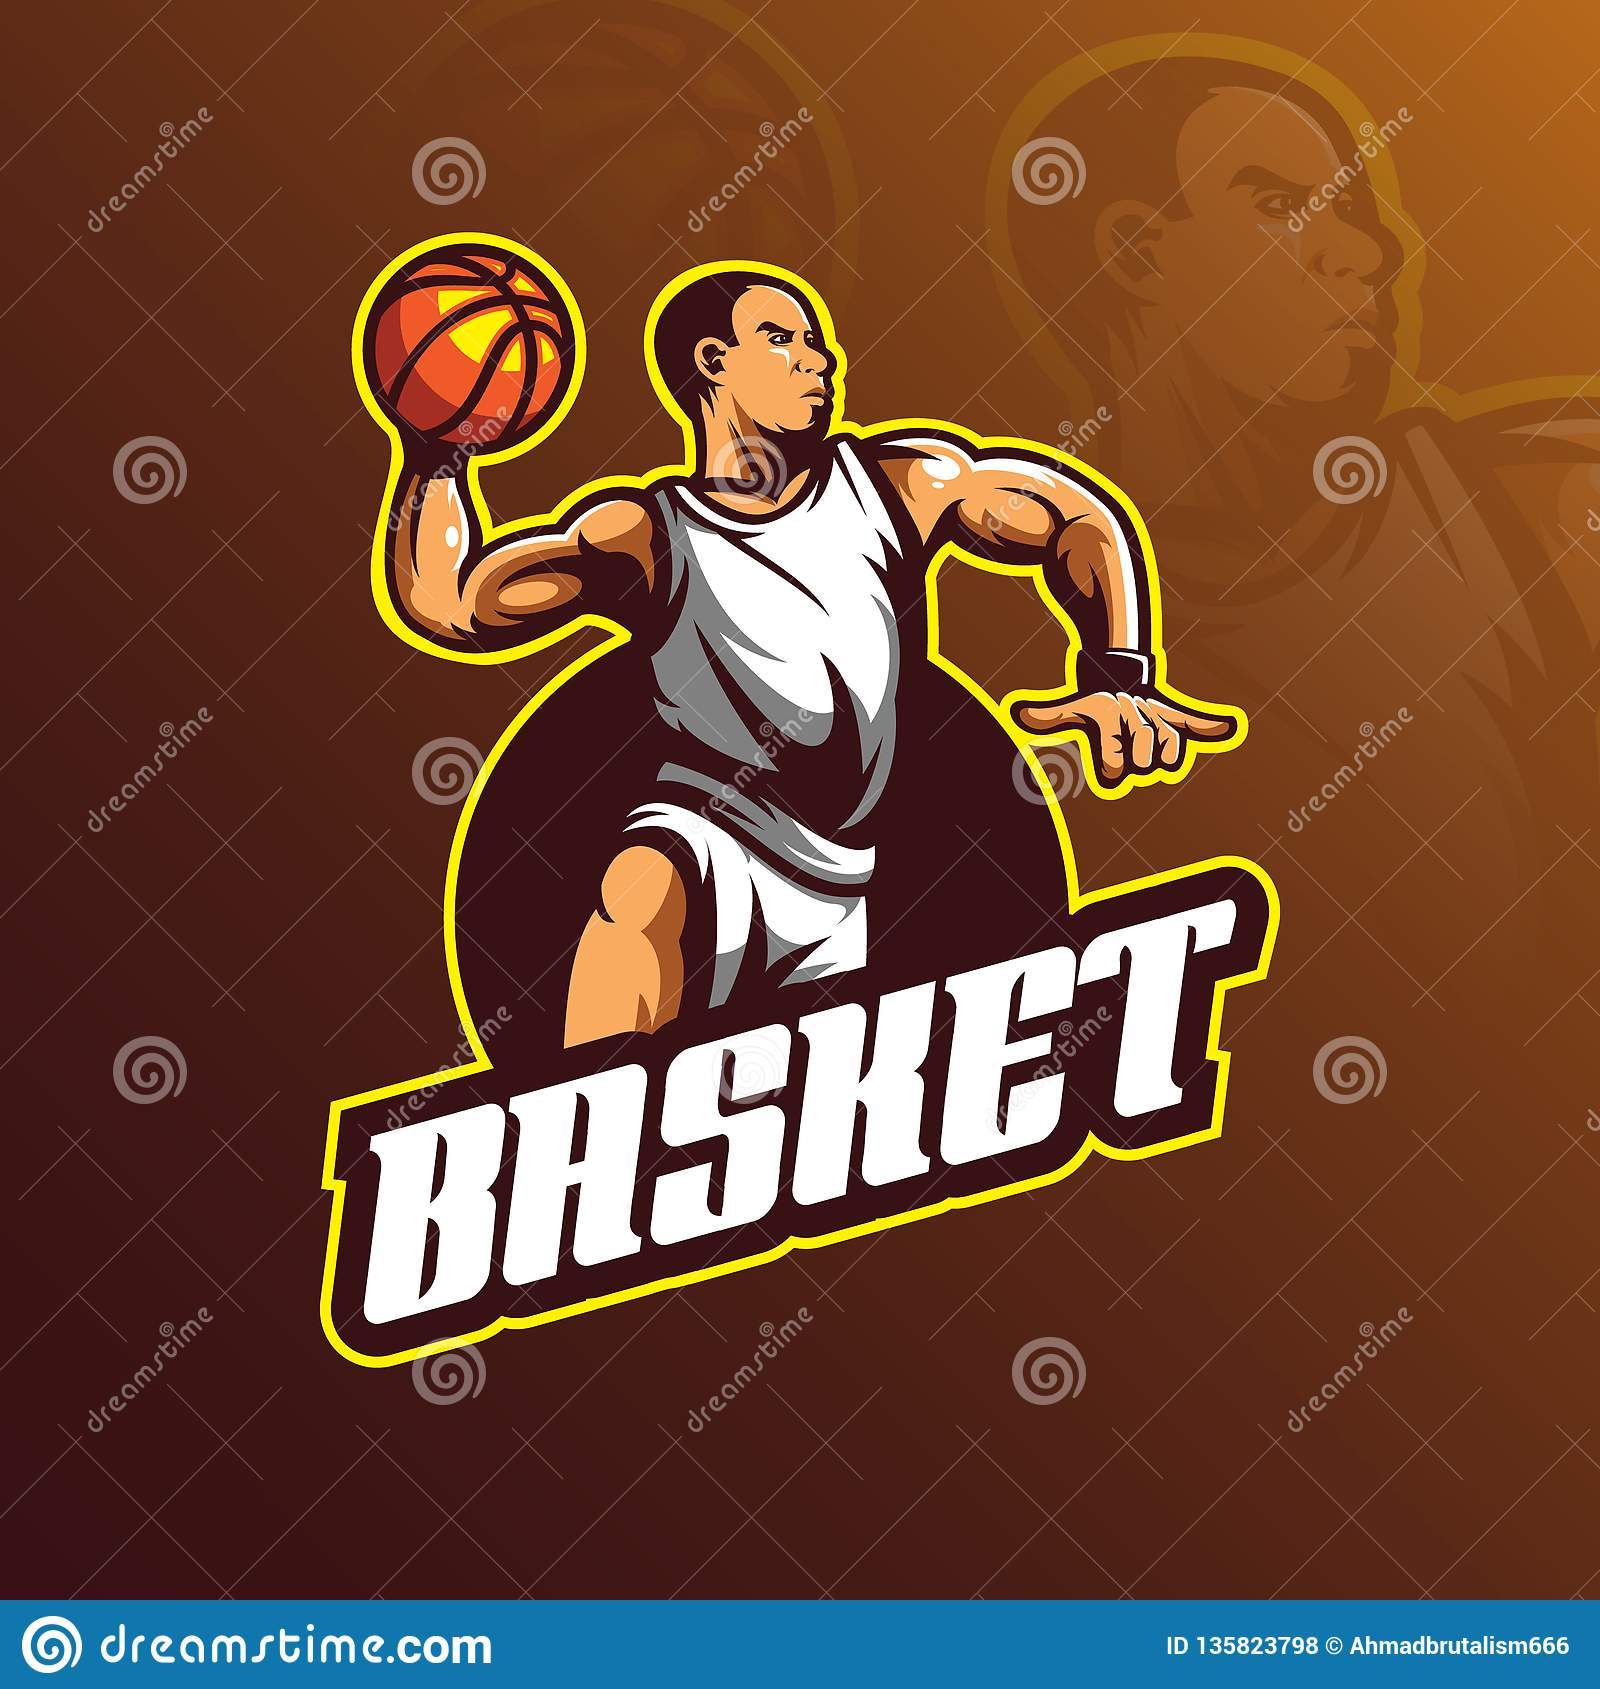 Basketball vector logo design mascot with modern illustration concept style for badge, emblem and tshirt printing. basketball play